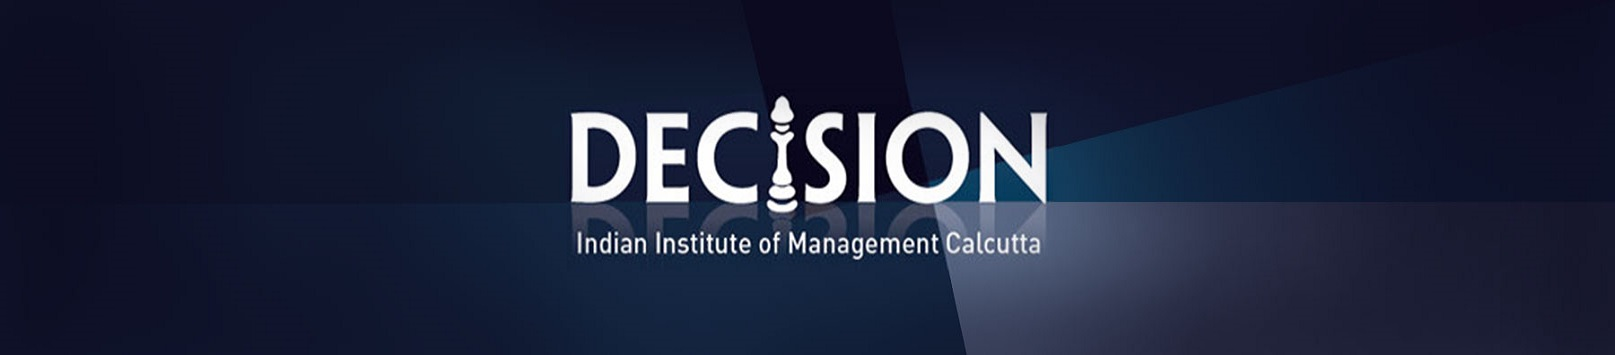 Call for Paper: Inviting Theoretical, Empirical papers, Interview-Based practitioner's Perspective articles and Case Studies for the special issue on Managing the Crisis: Industry Perspectives, A special emphasis on Covid-Ridden World.